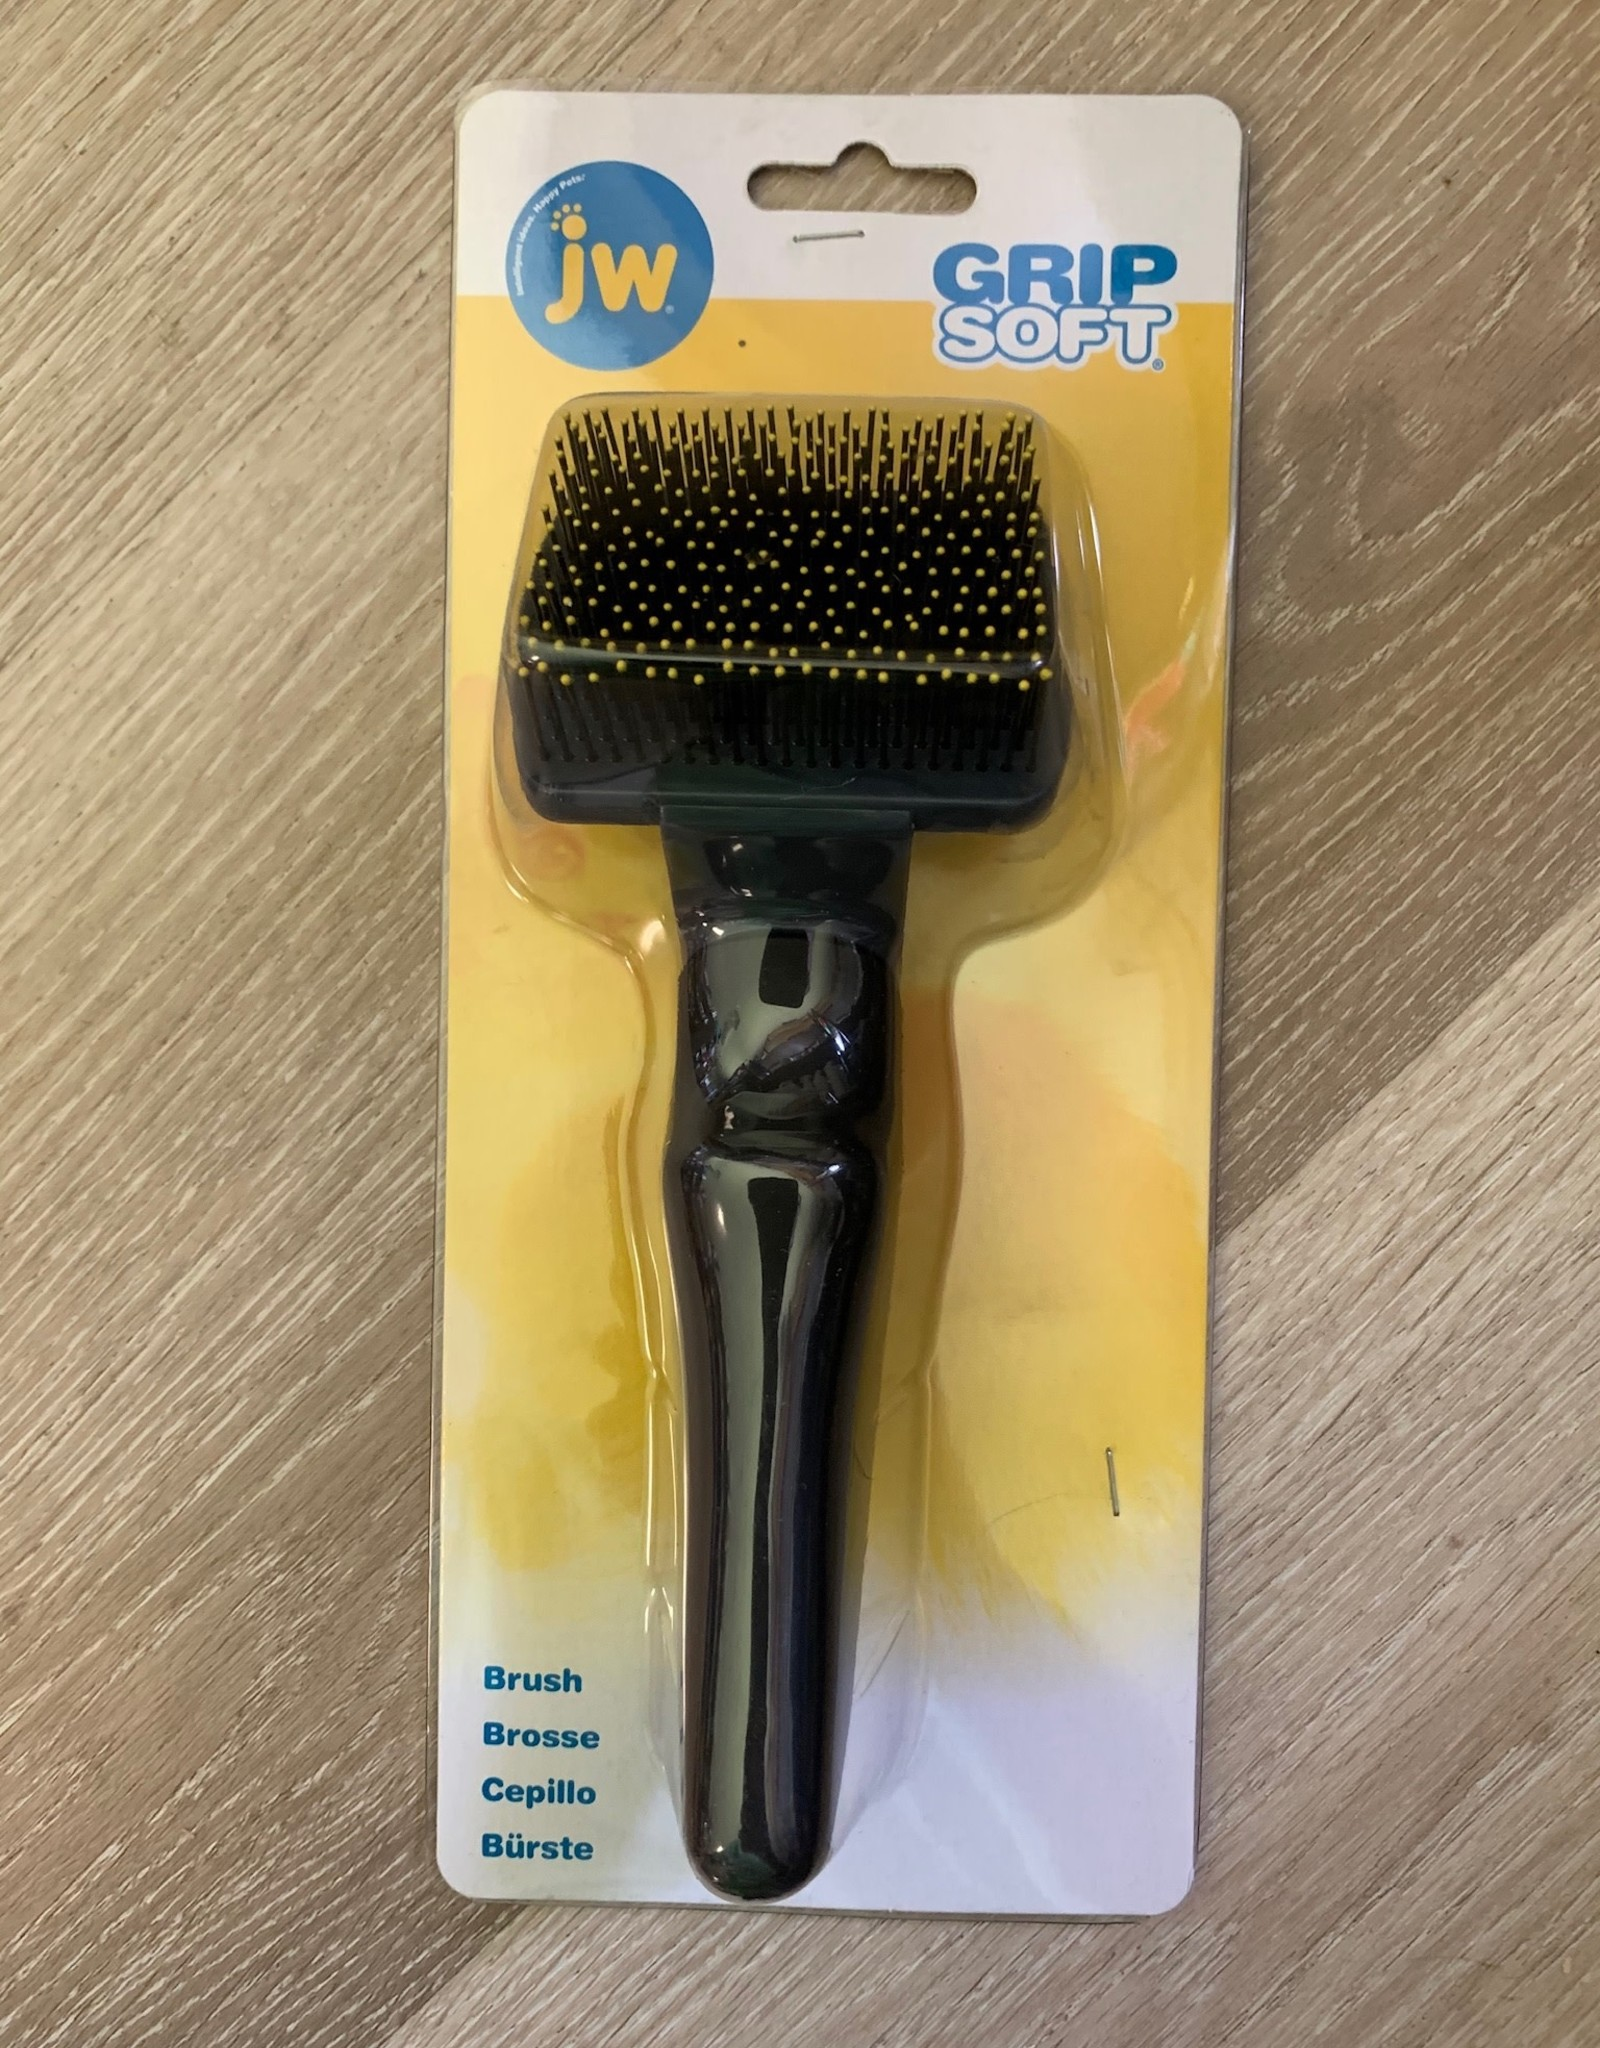 JW JW Grip Soft Brush